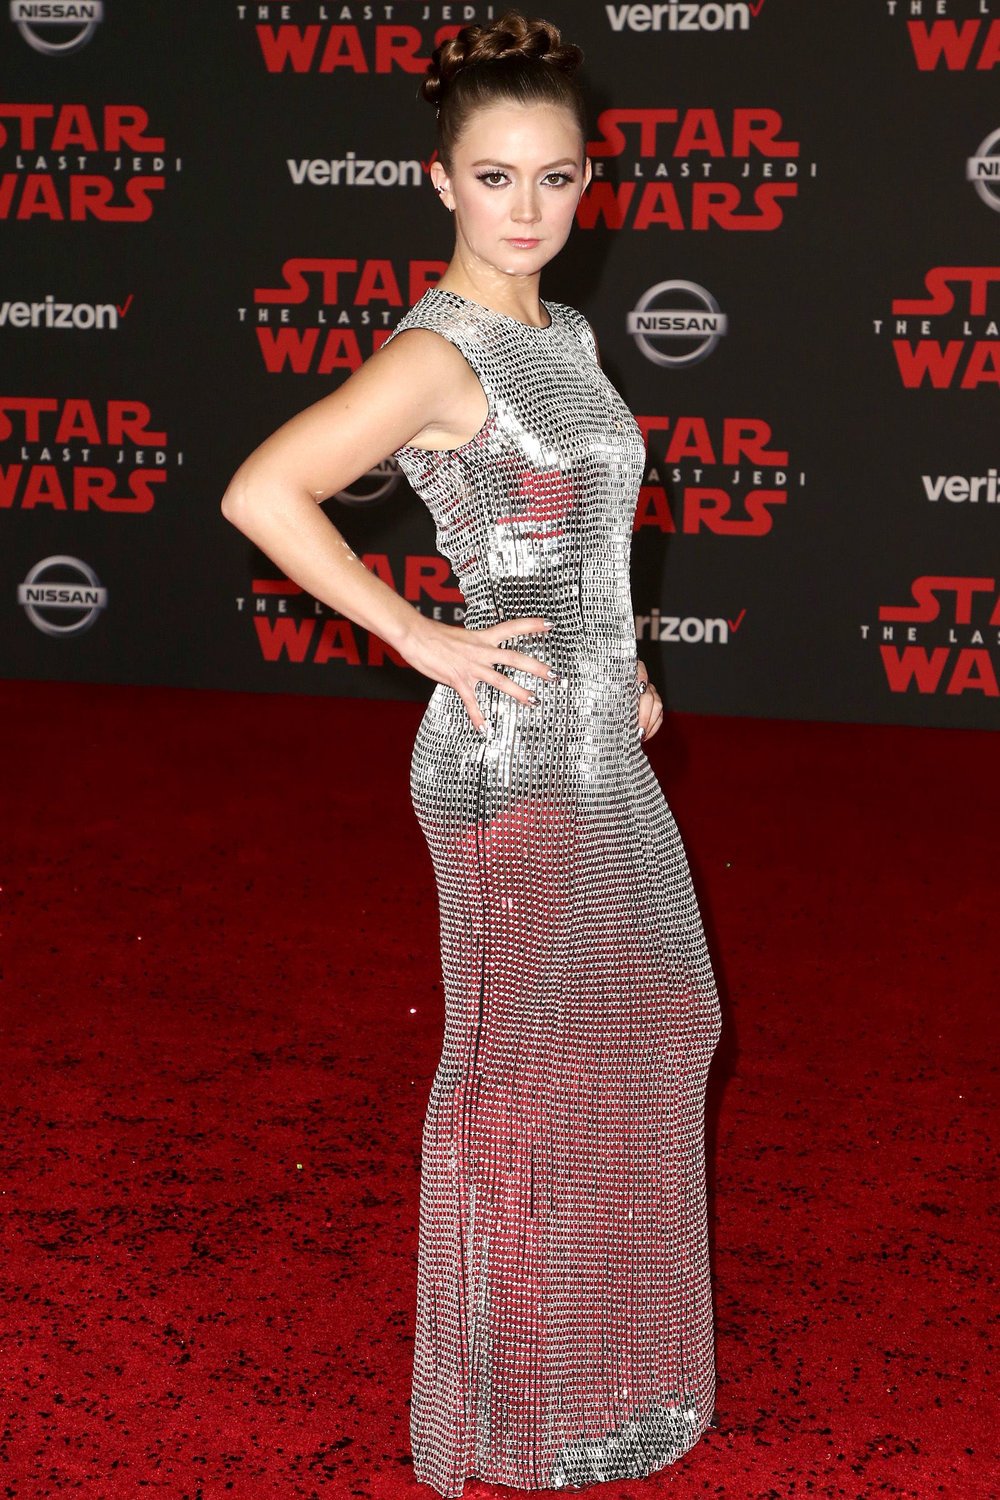 Billie Lourd - Daughter of the late great Carrie Fisher, Billie pays homage to Commander Leia's hairstyle in the previous movie. Playing Connix in the movie, she opted for a dazzlingly reflective dress, like an elegant mirror ball.